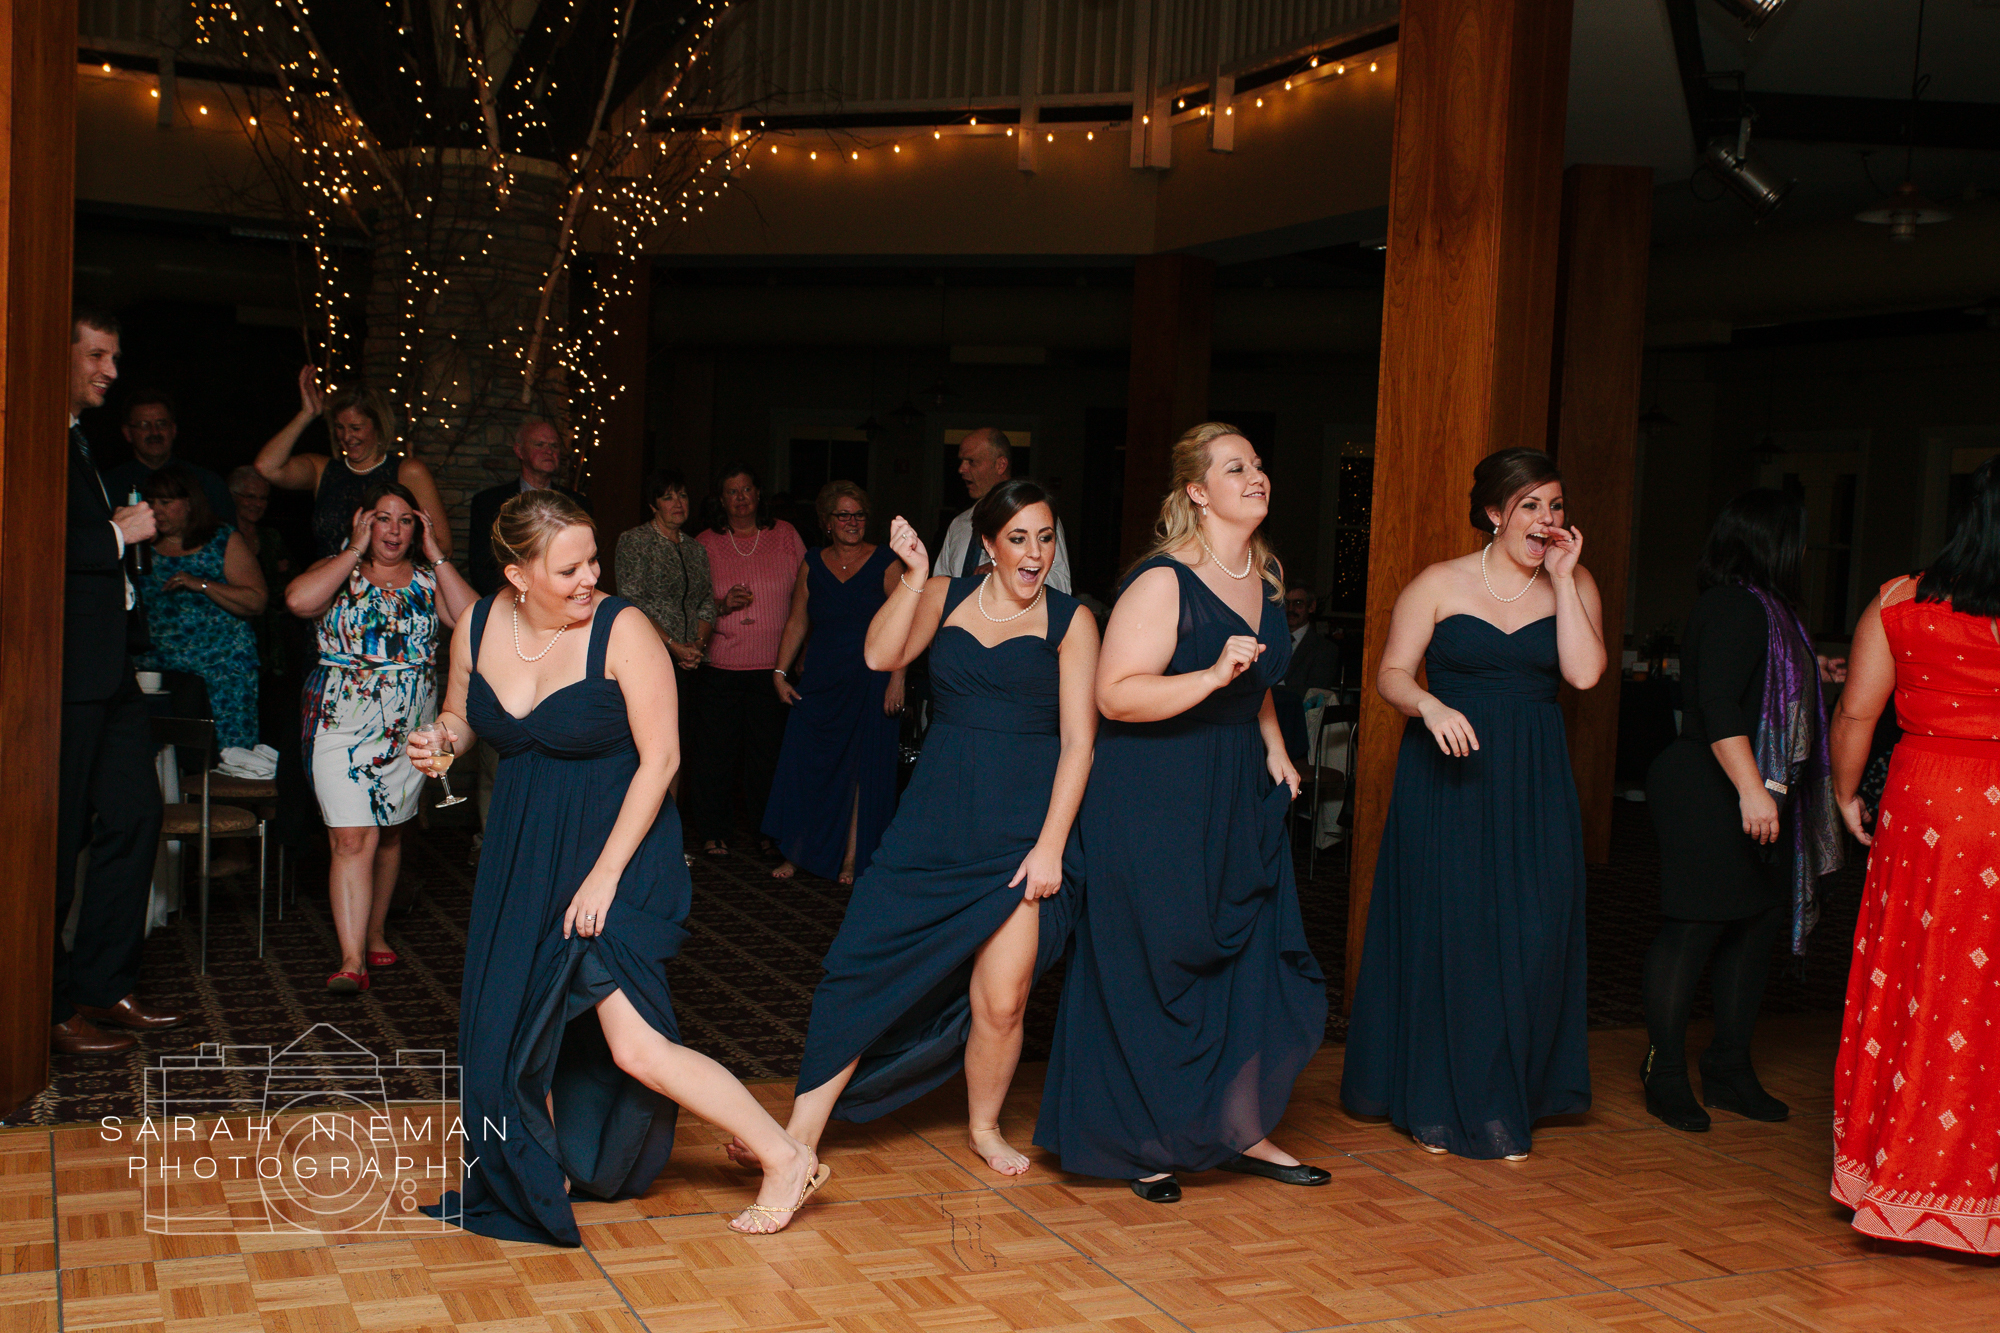 Best bridesmaids ever! They were rocking out the whole time.